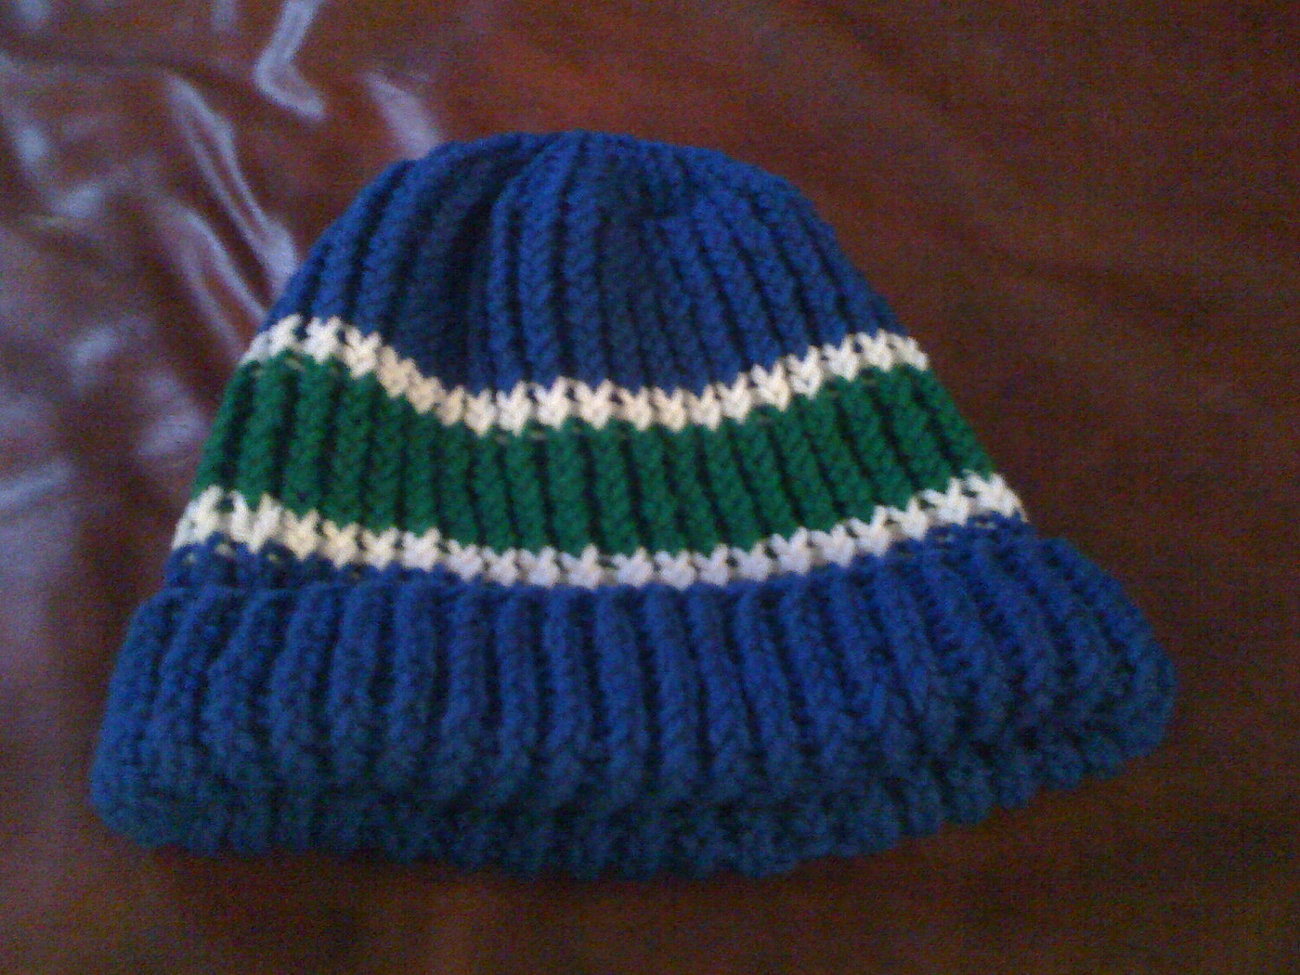 knit blue green and white hat beanie cap hood warm (or color of your choice)